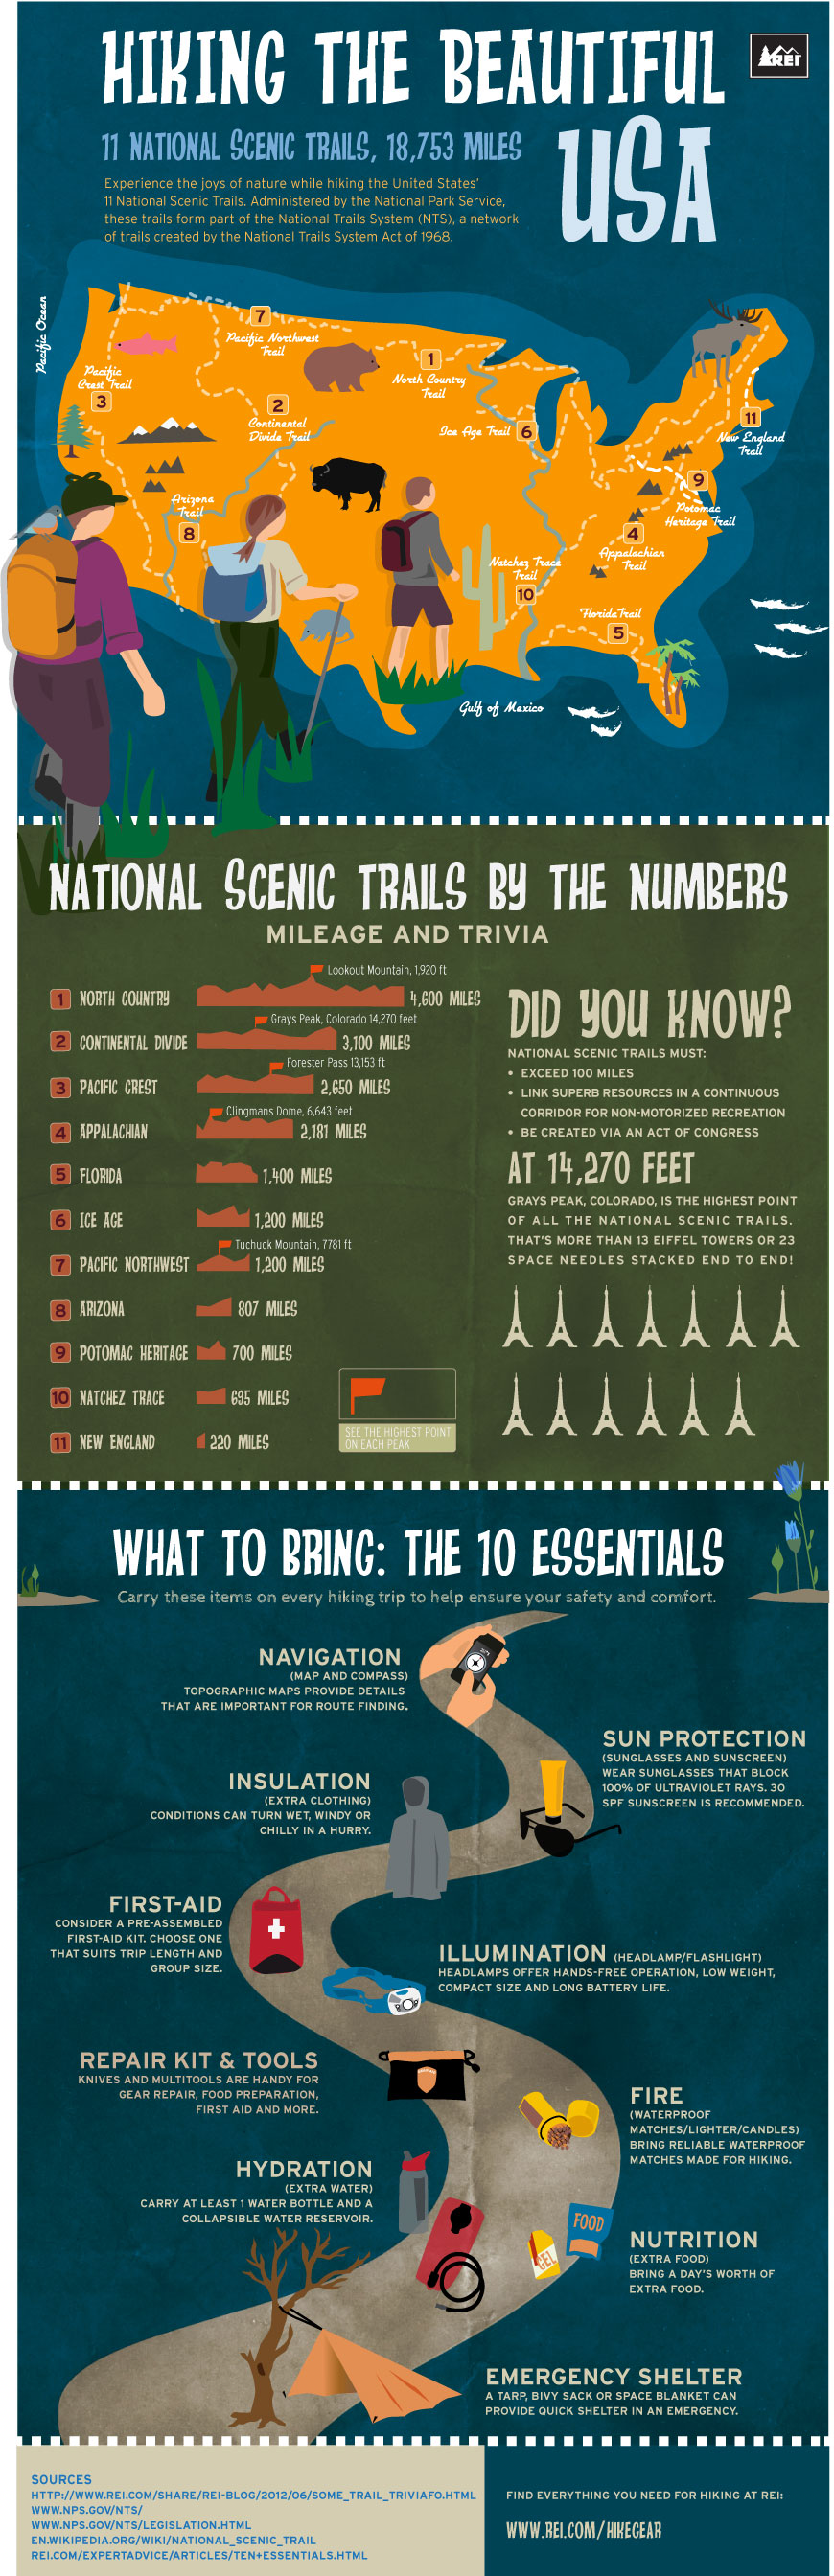 Hiking the Beautiful USA: US National Scenic Trails Map